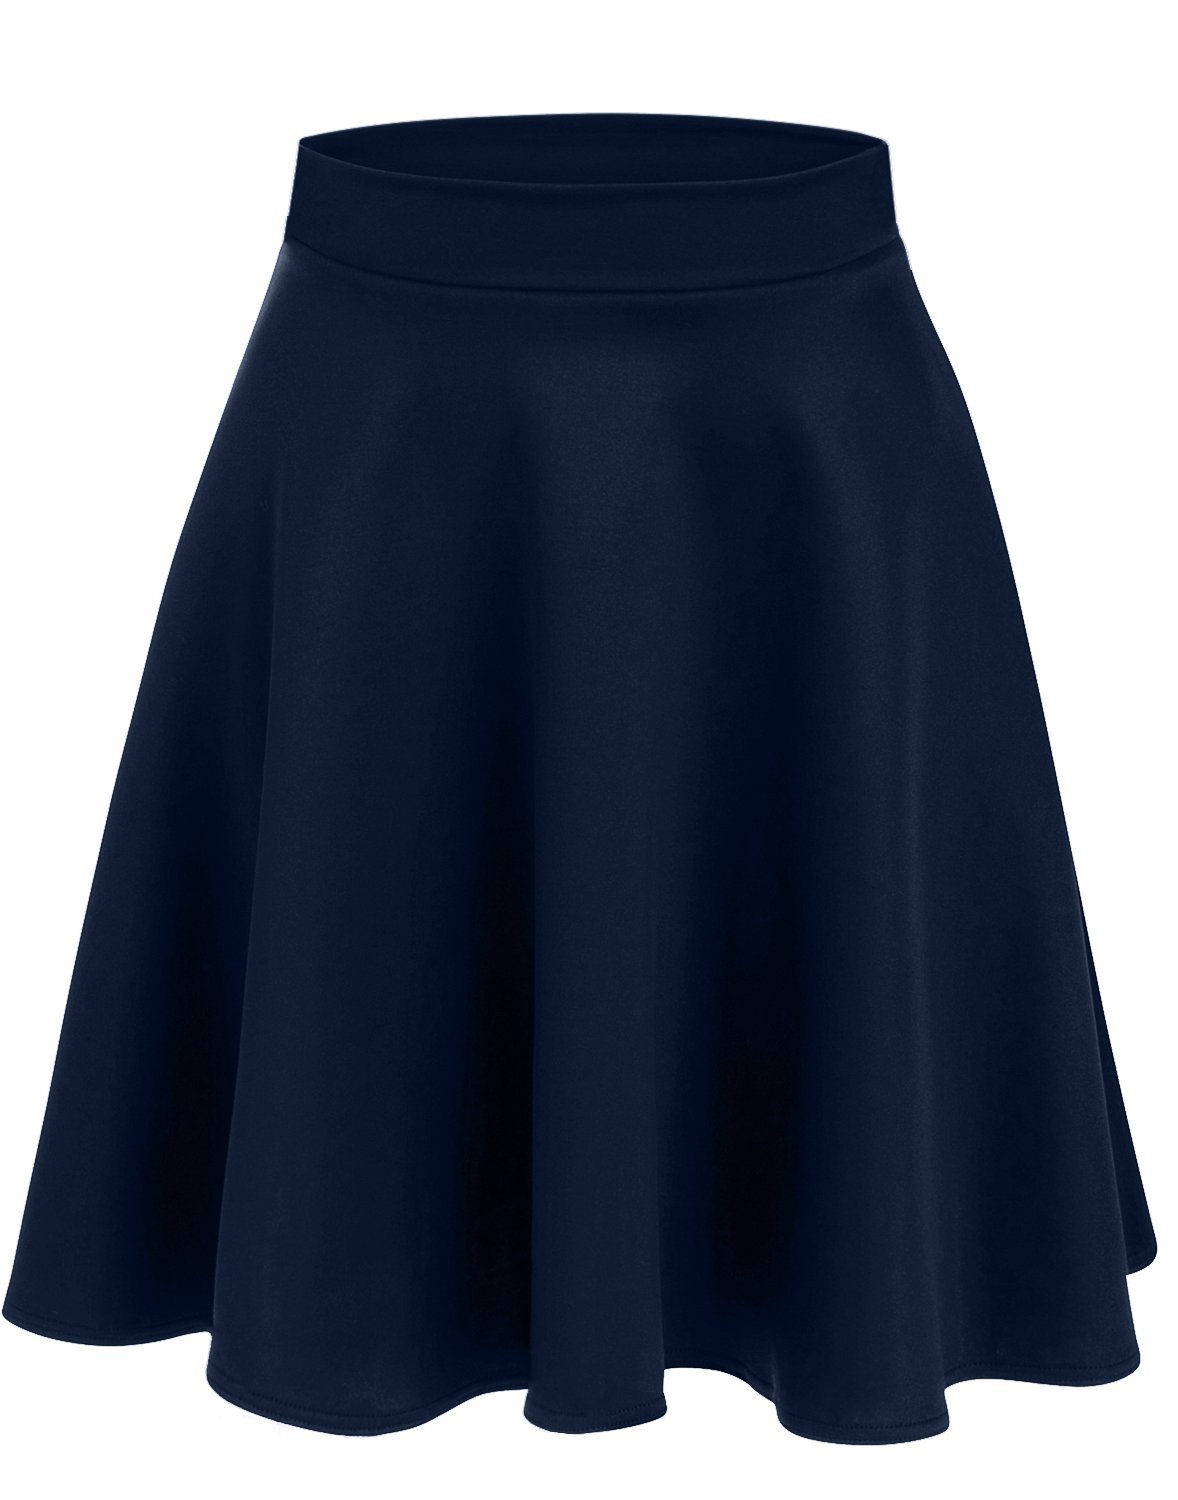 Women's Midi Skater Skirt Flared Stretch Skirt for Women - Made in USA Navy Small